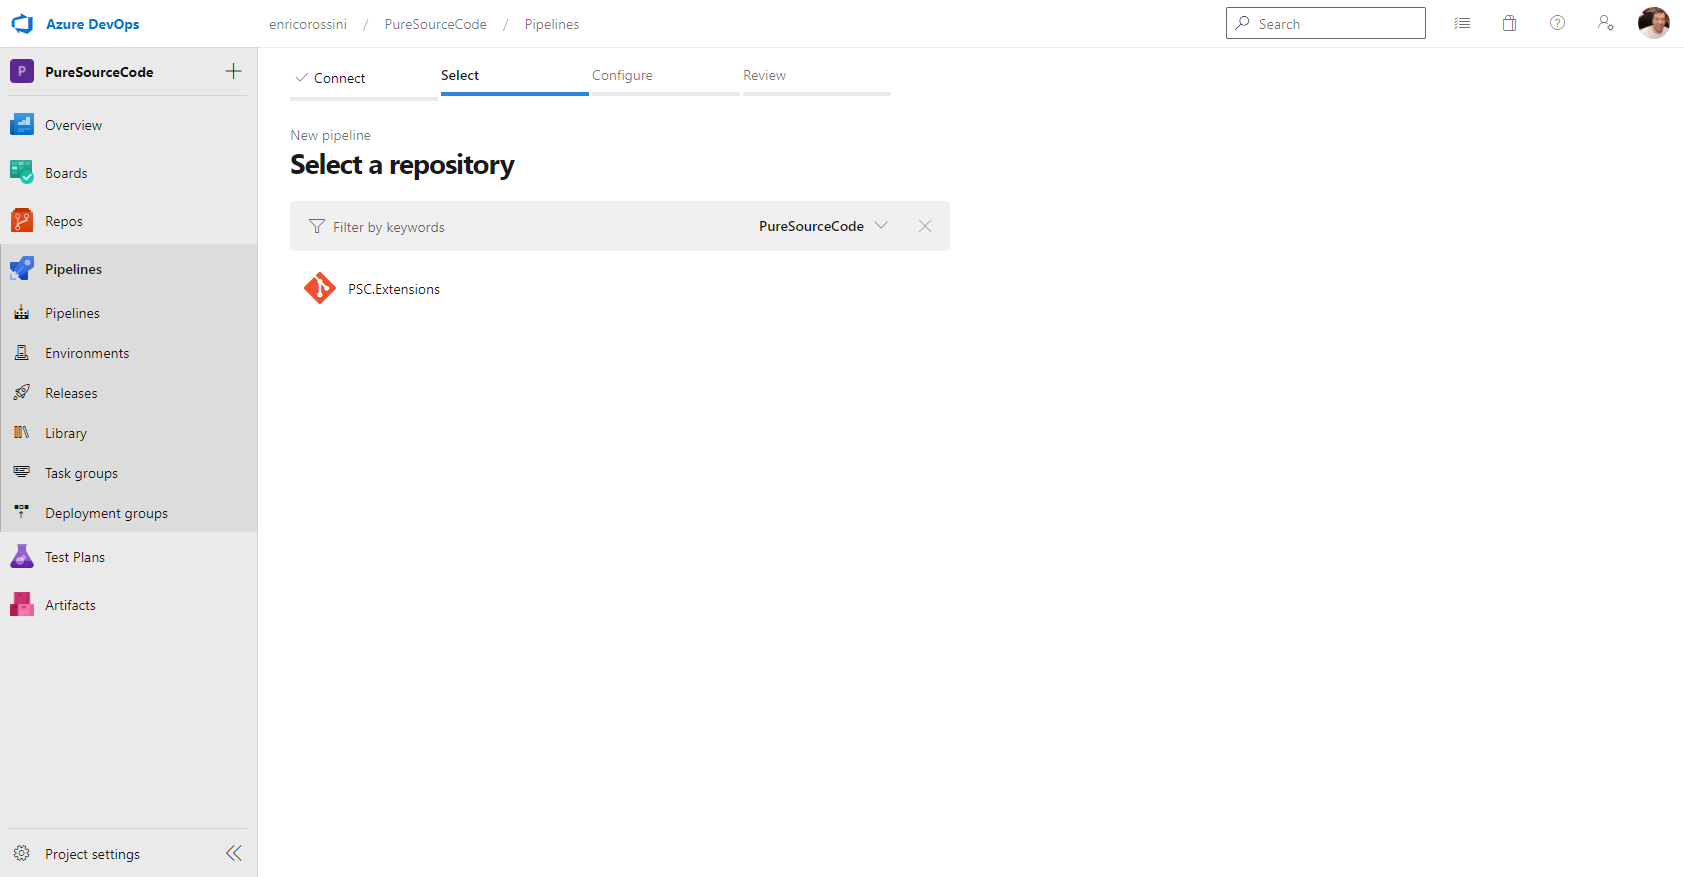 Select a repository in Azure DevOps for pipeline